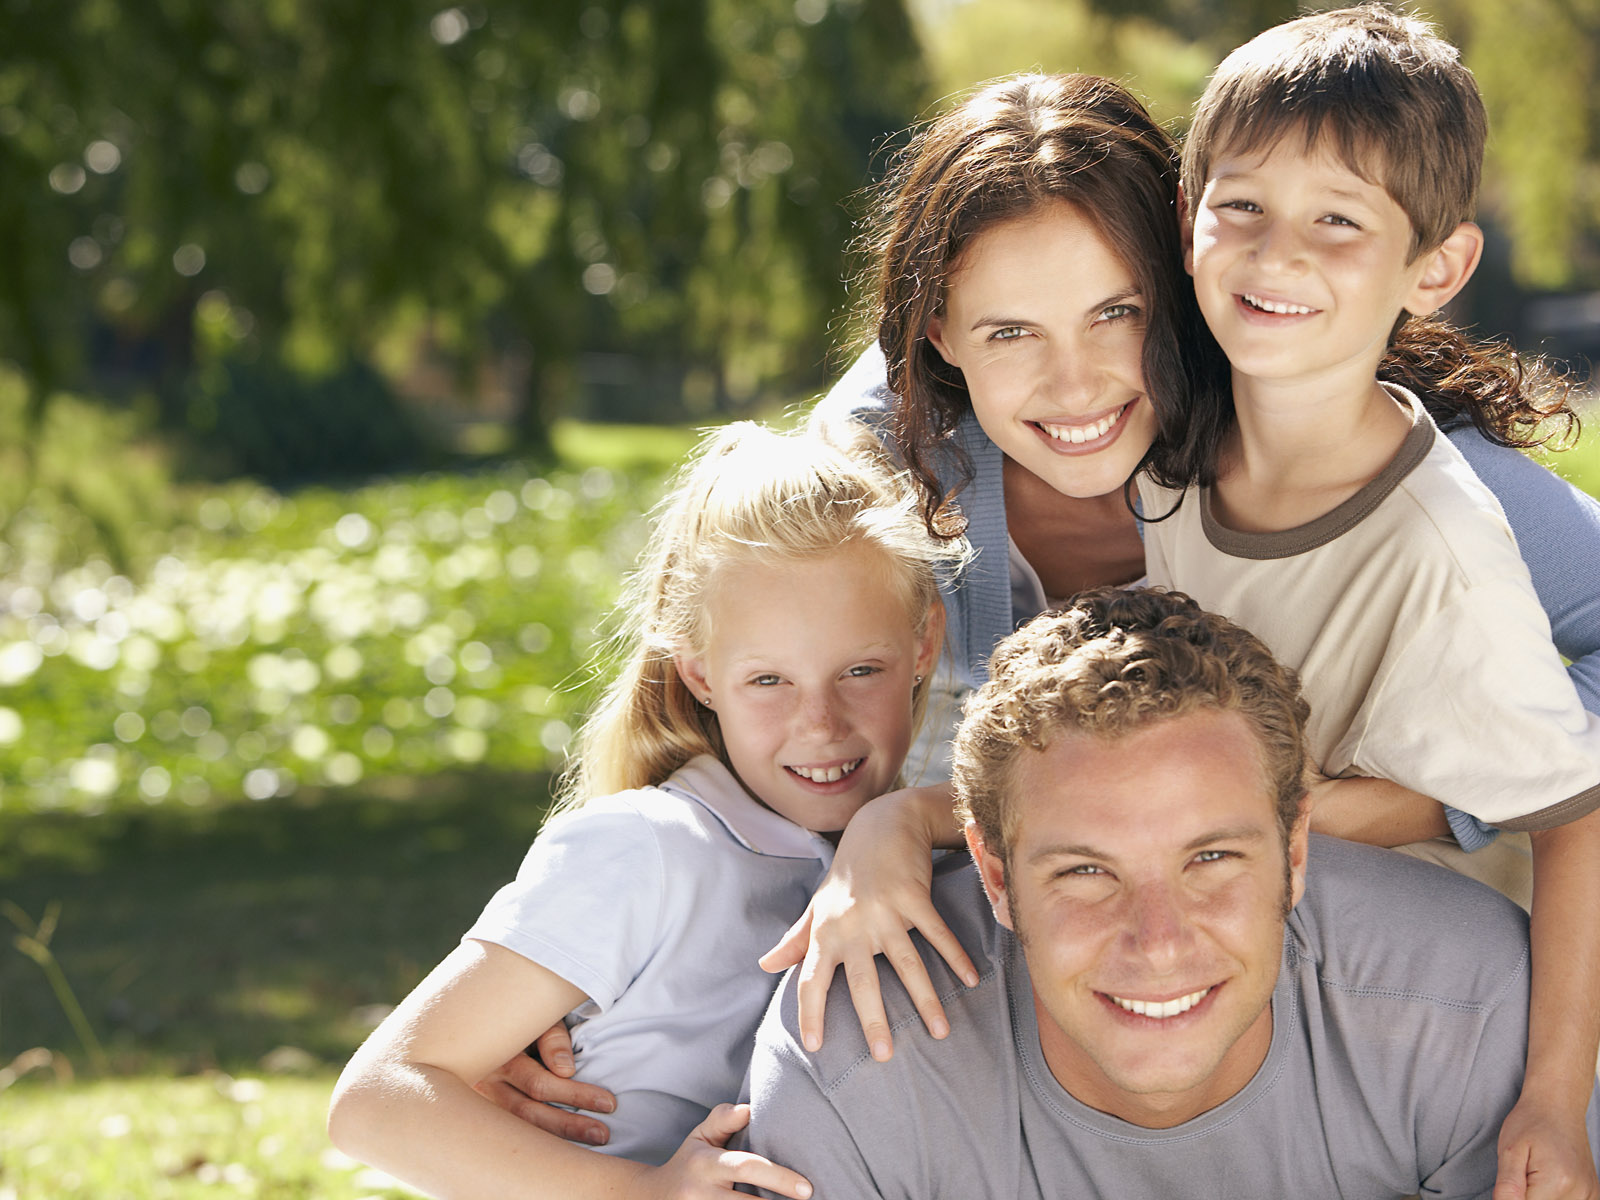 iwallfinder.com-the-second-series-of-happy-family-life-27105.jpg